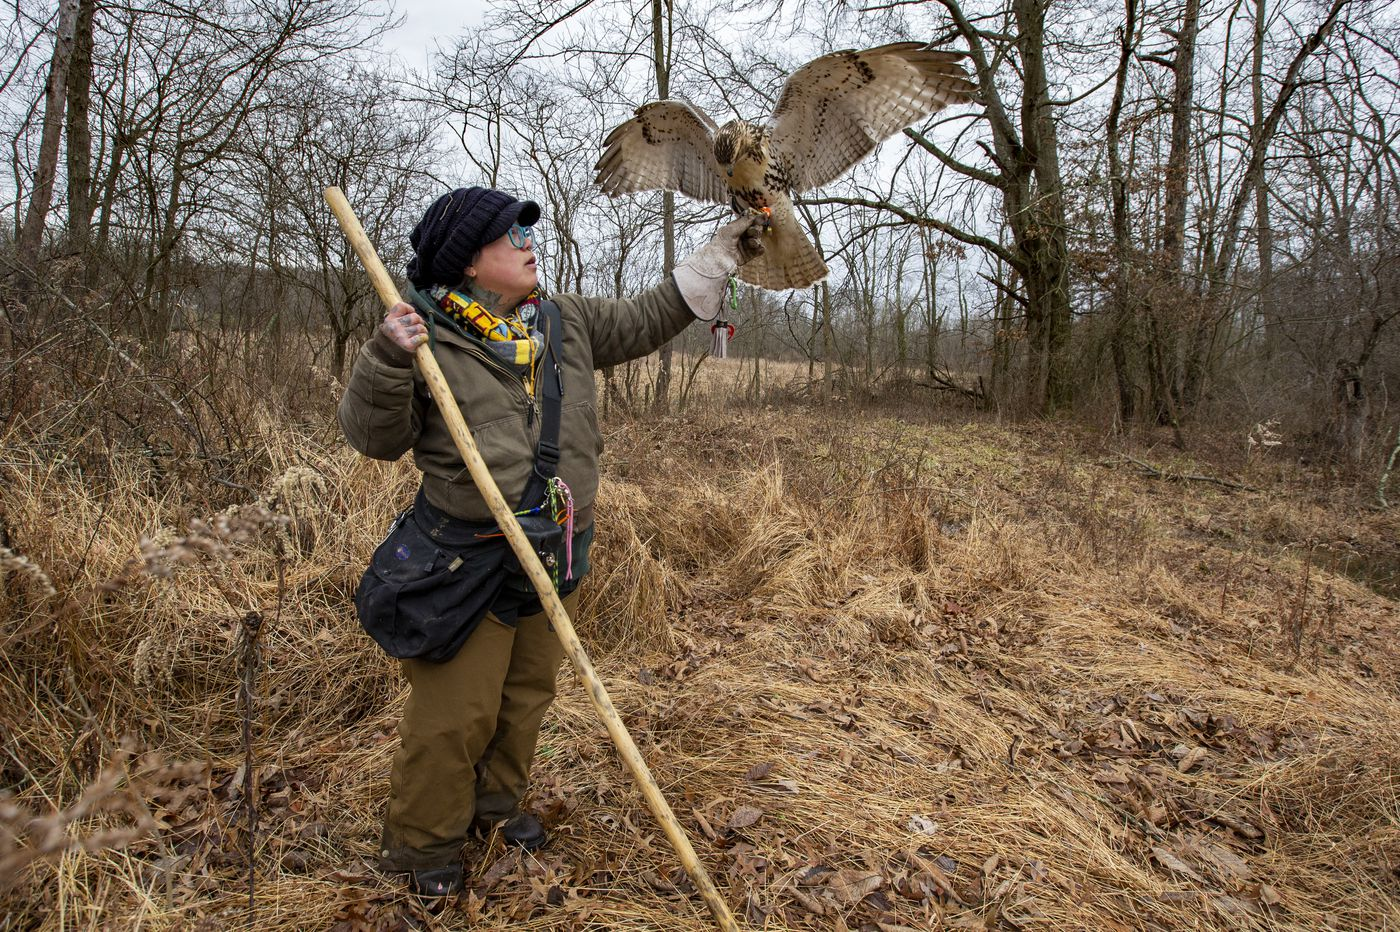 Falconry, an ancient form of hunting, finds new devotees